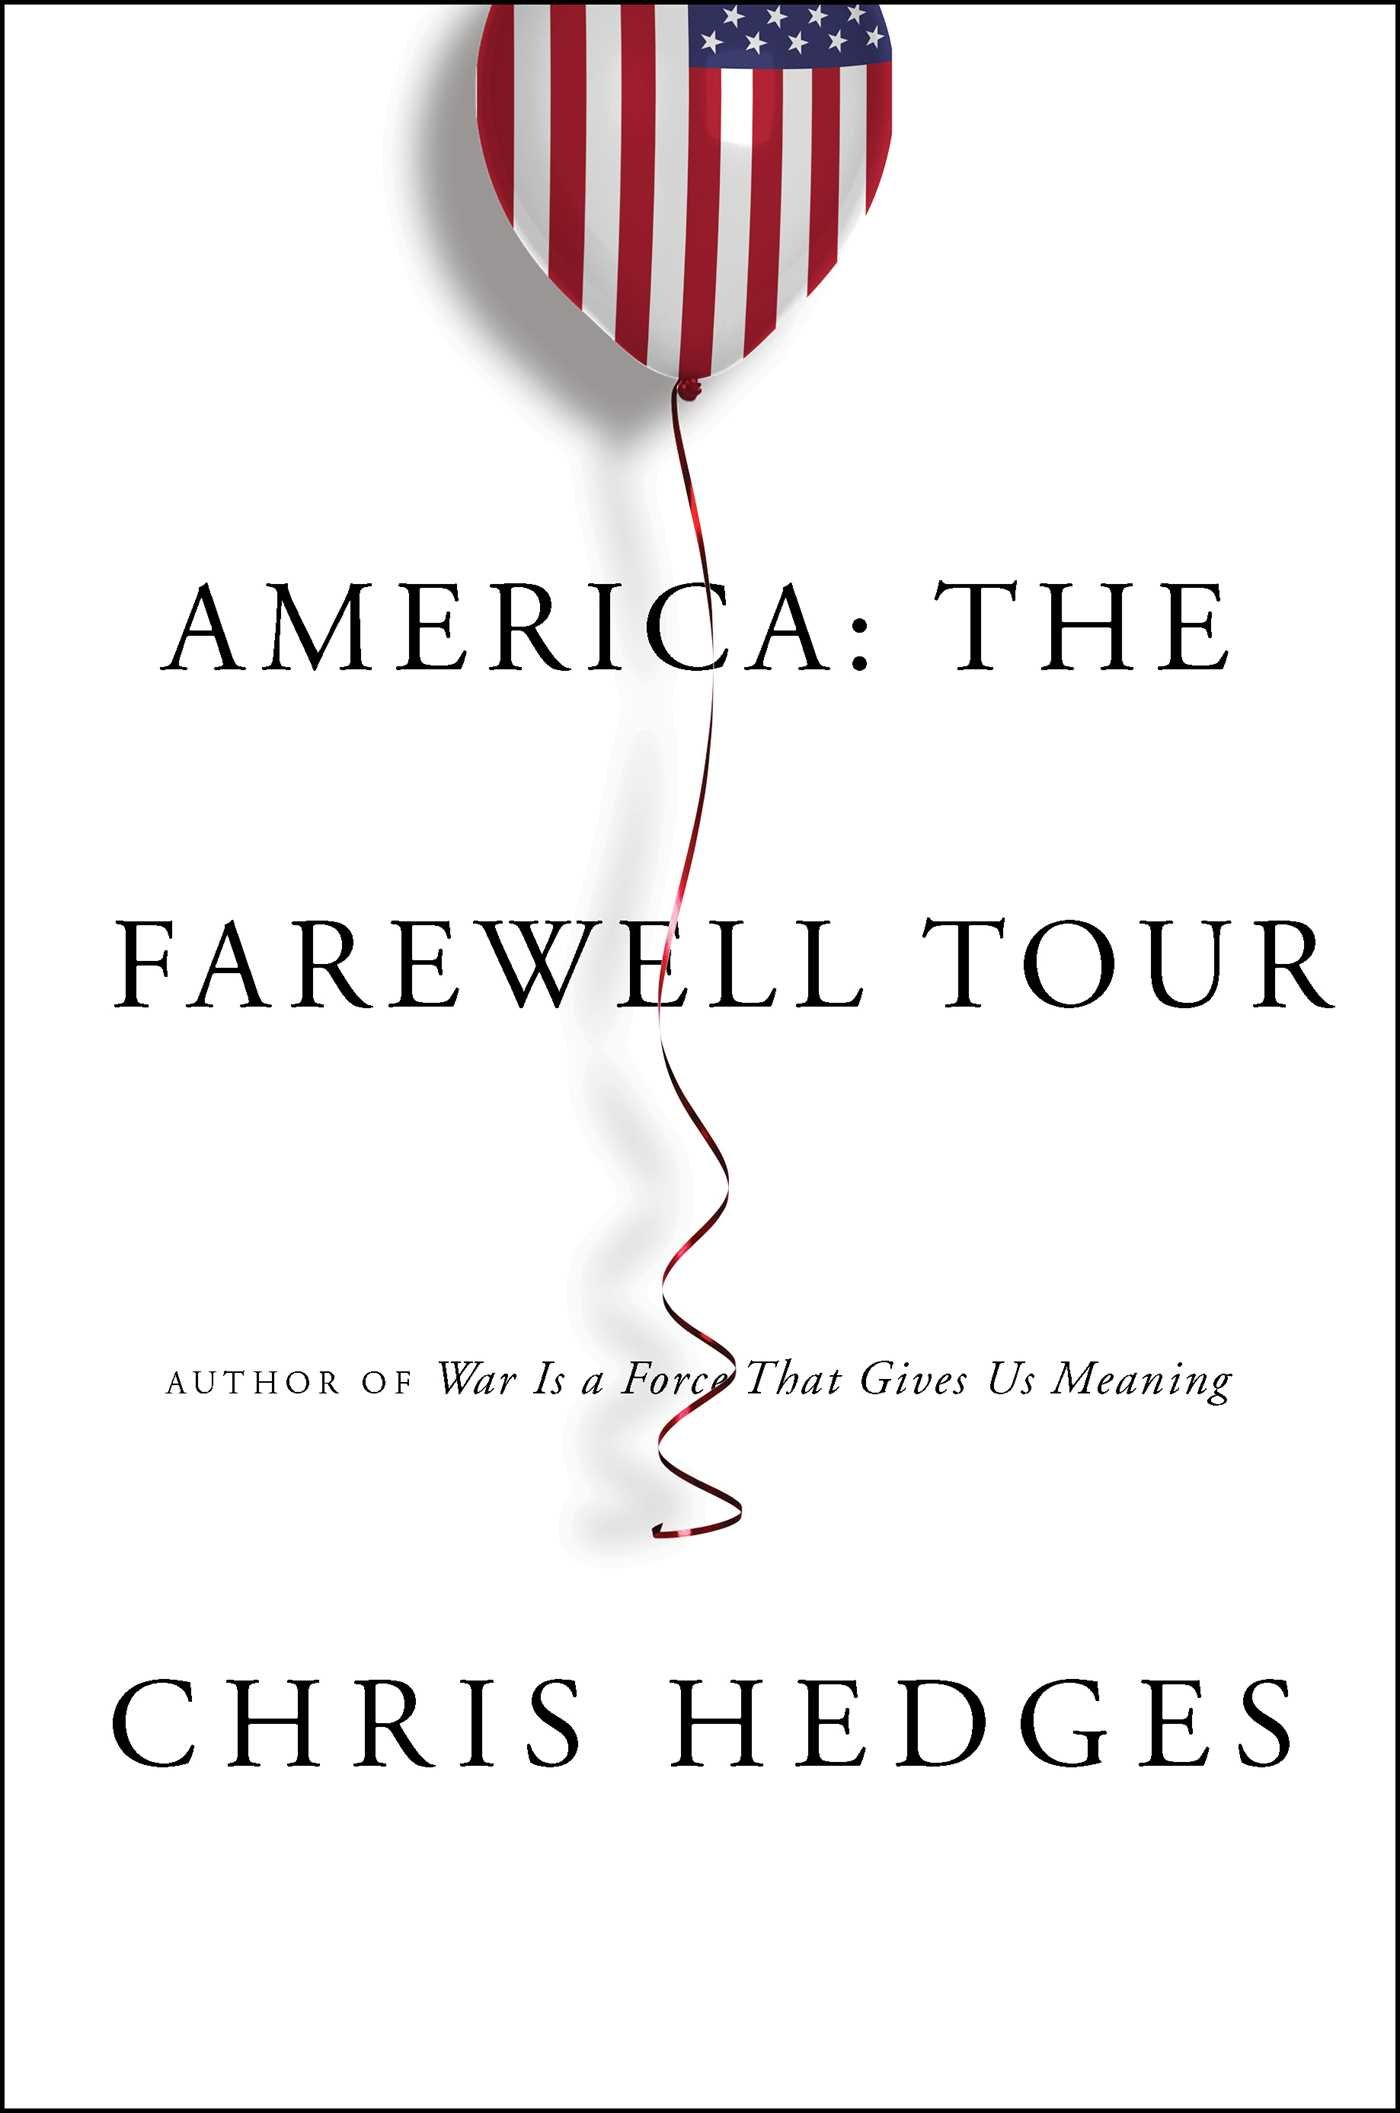 Chris Hedges – America: The Farewell Tour